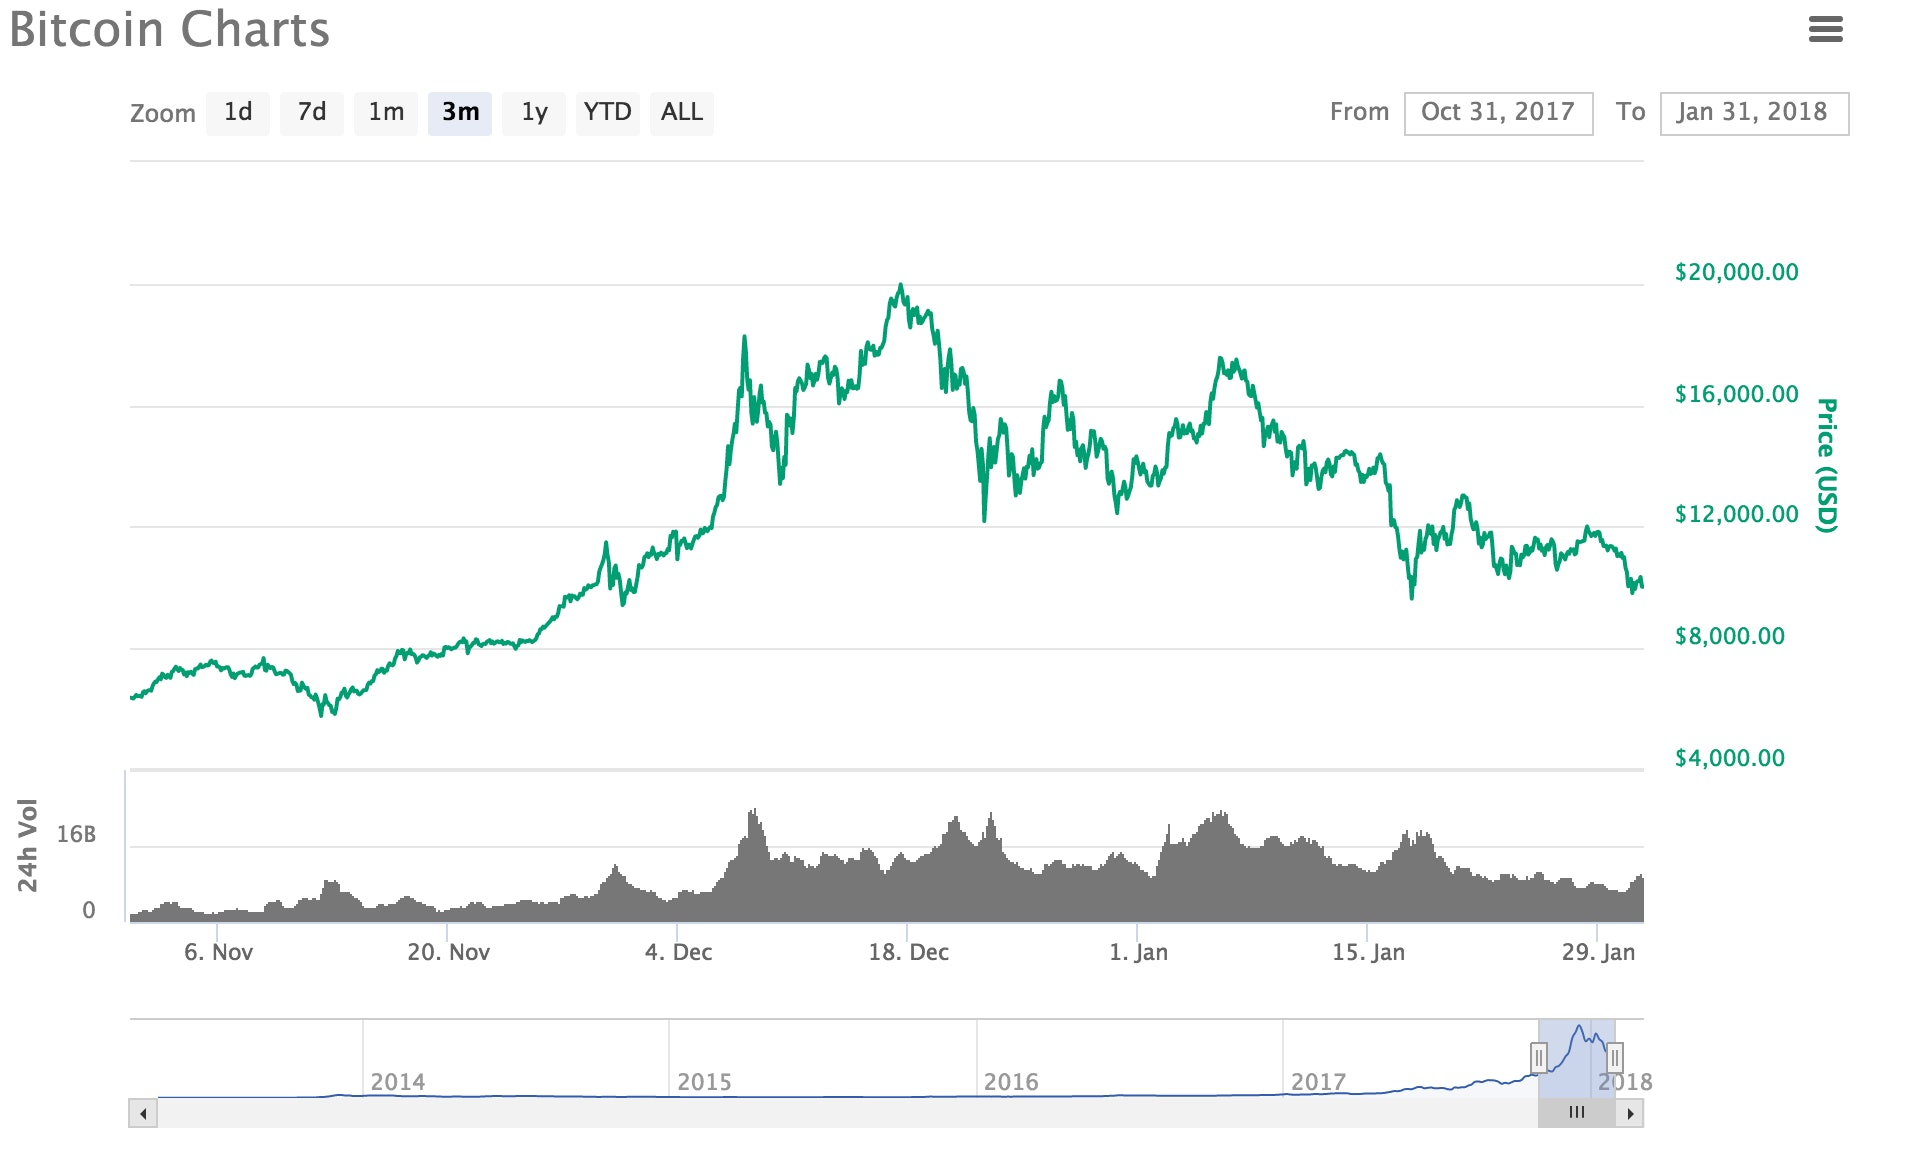 Bitcoin's value from November 2017 until now.